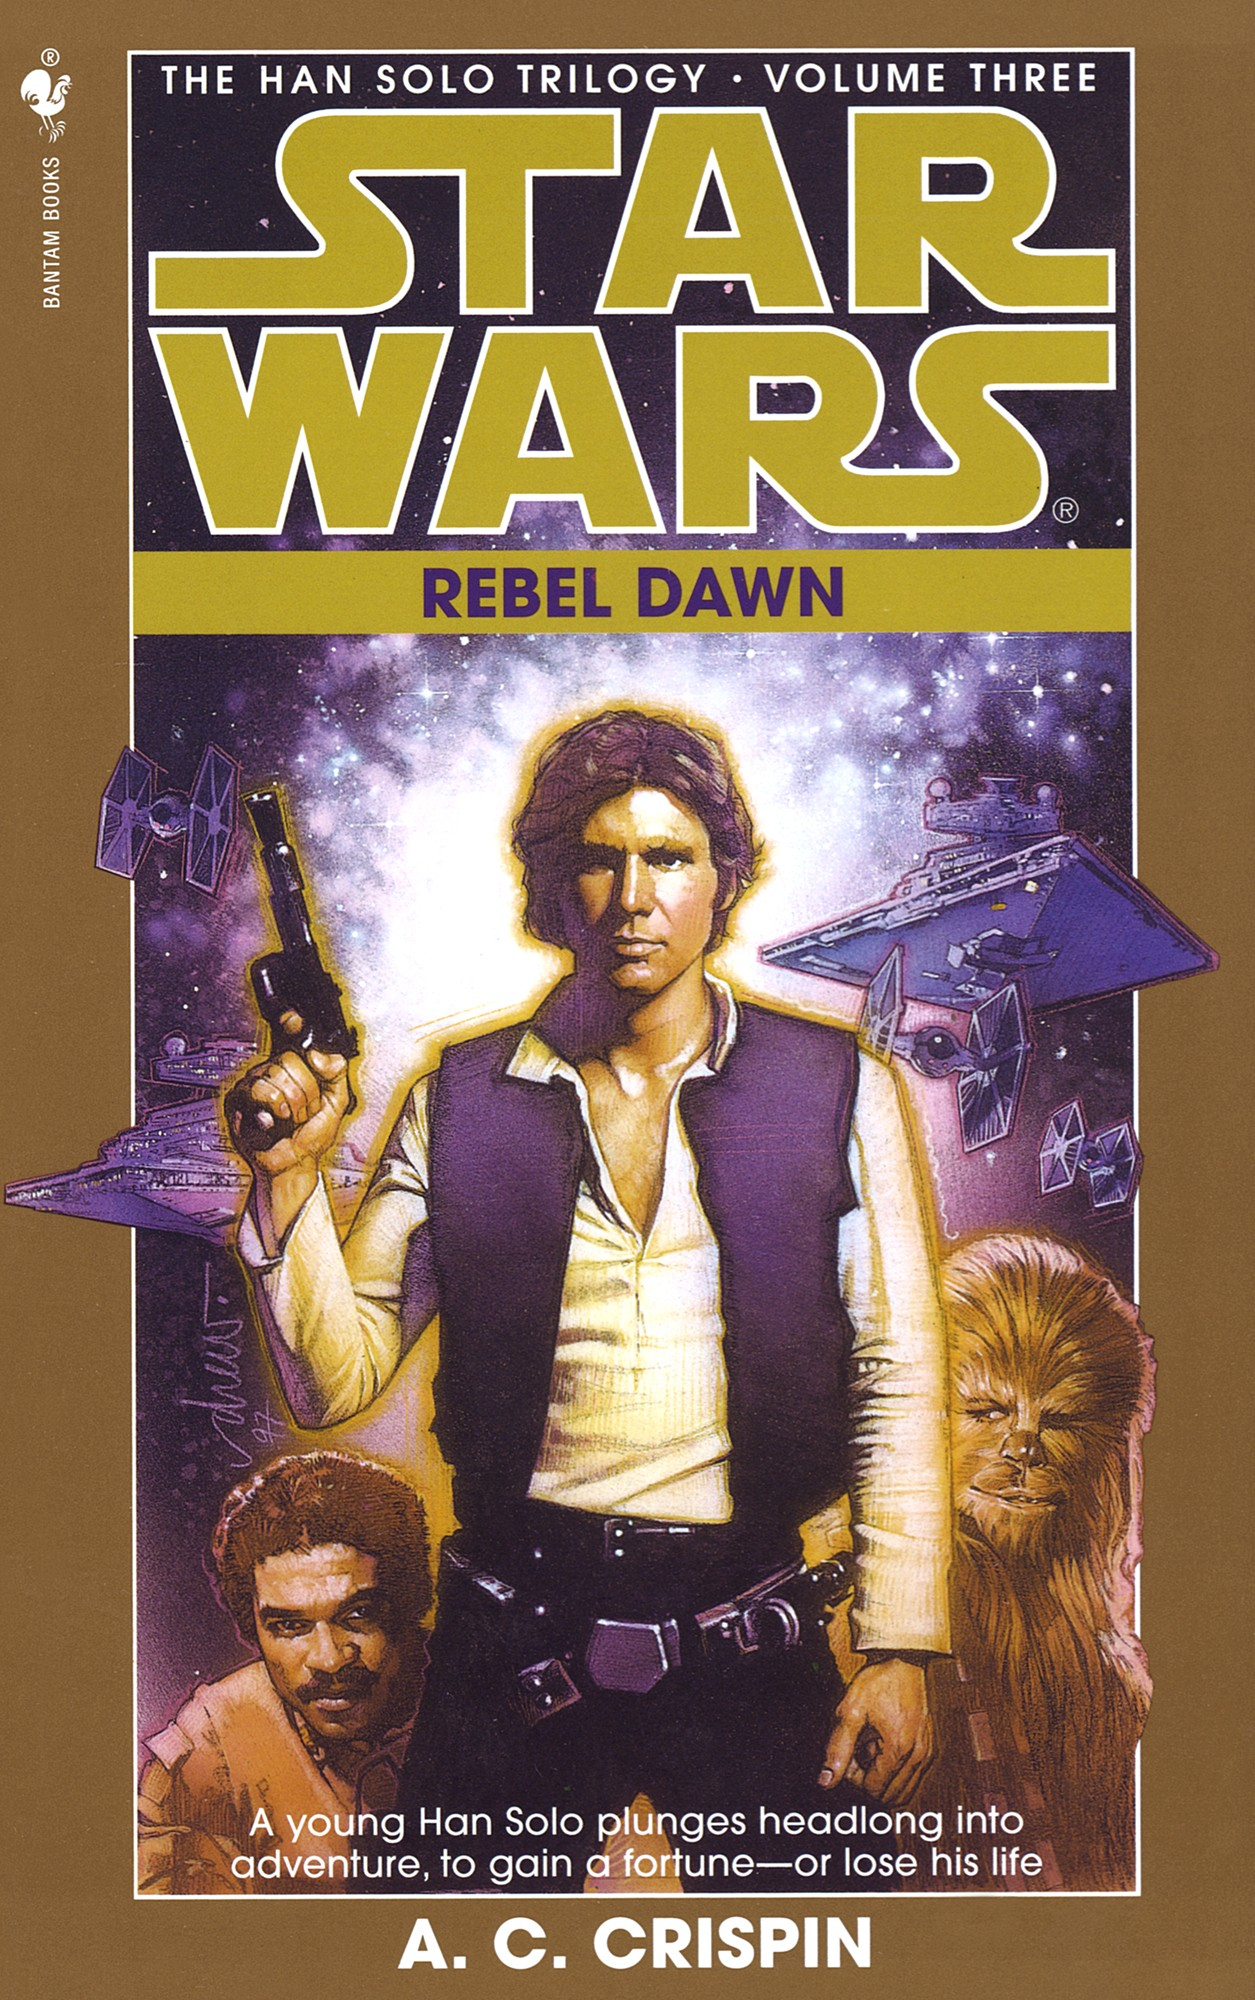 Image result for Rebel dawn